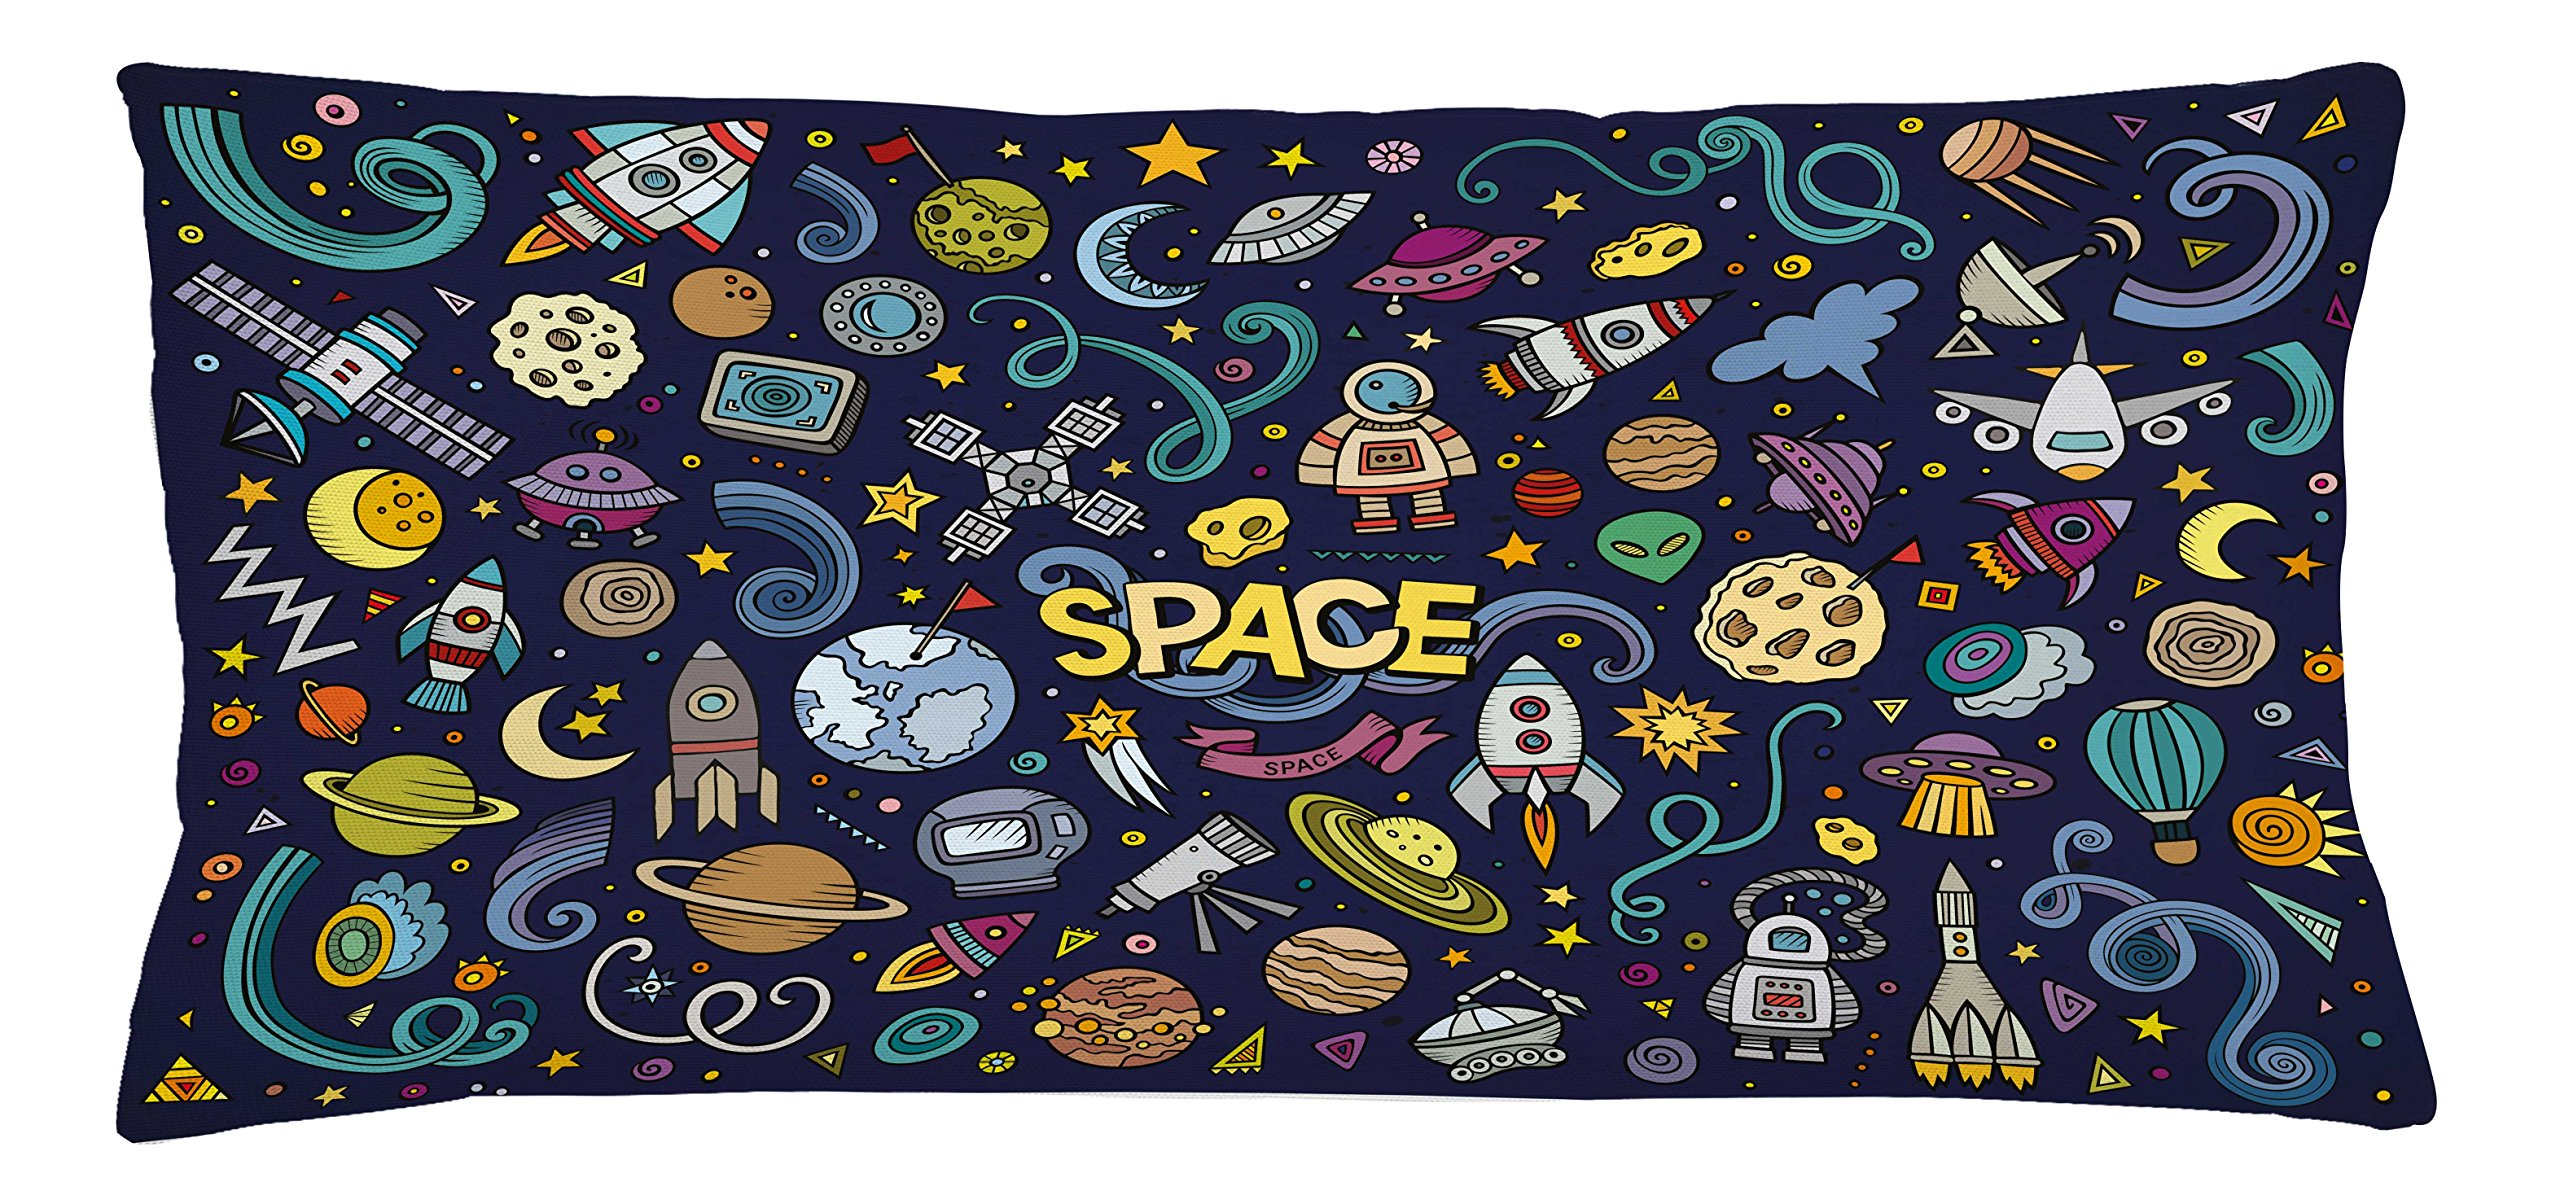 Lunarable Boy's Room Throw Pillow Cushion Cover, Hand Drawn Doodles About Space and Astronauts on a Night Blue Background Artwork, Decorative Square Accent Pillow Case, 36 X 16 inches, Night Blue